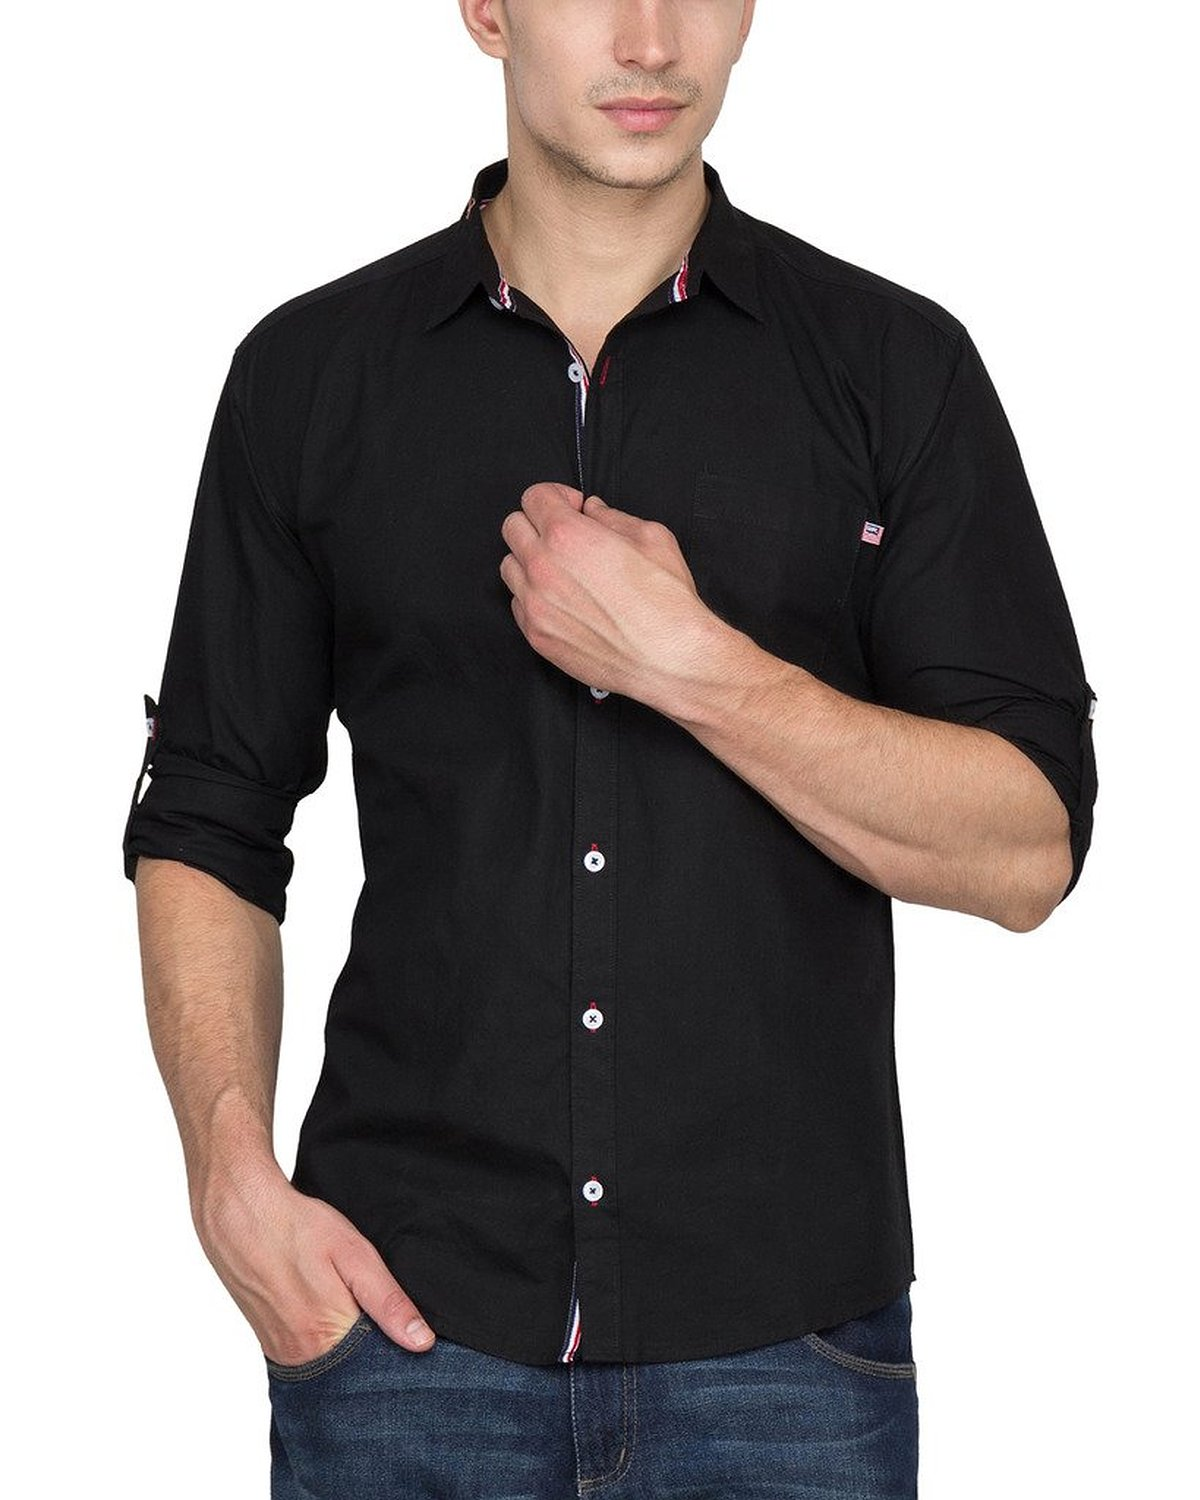 5a647937e4 India Desire : Amazon Shirts Offer: Get Upto 75% Off On Branded Mens Shirt